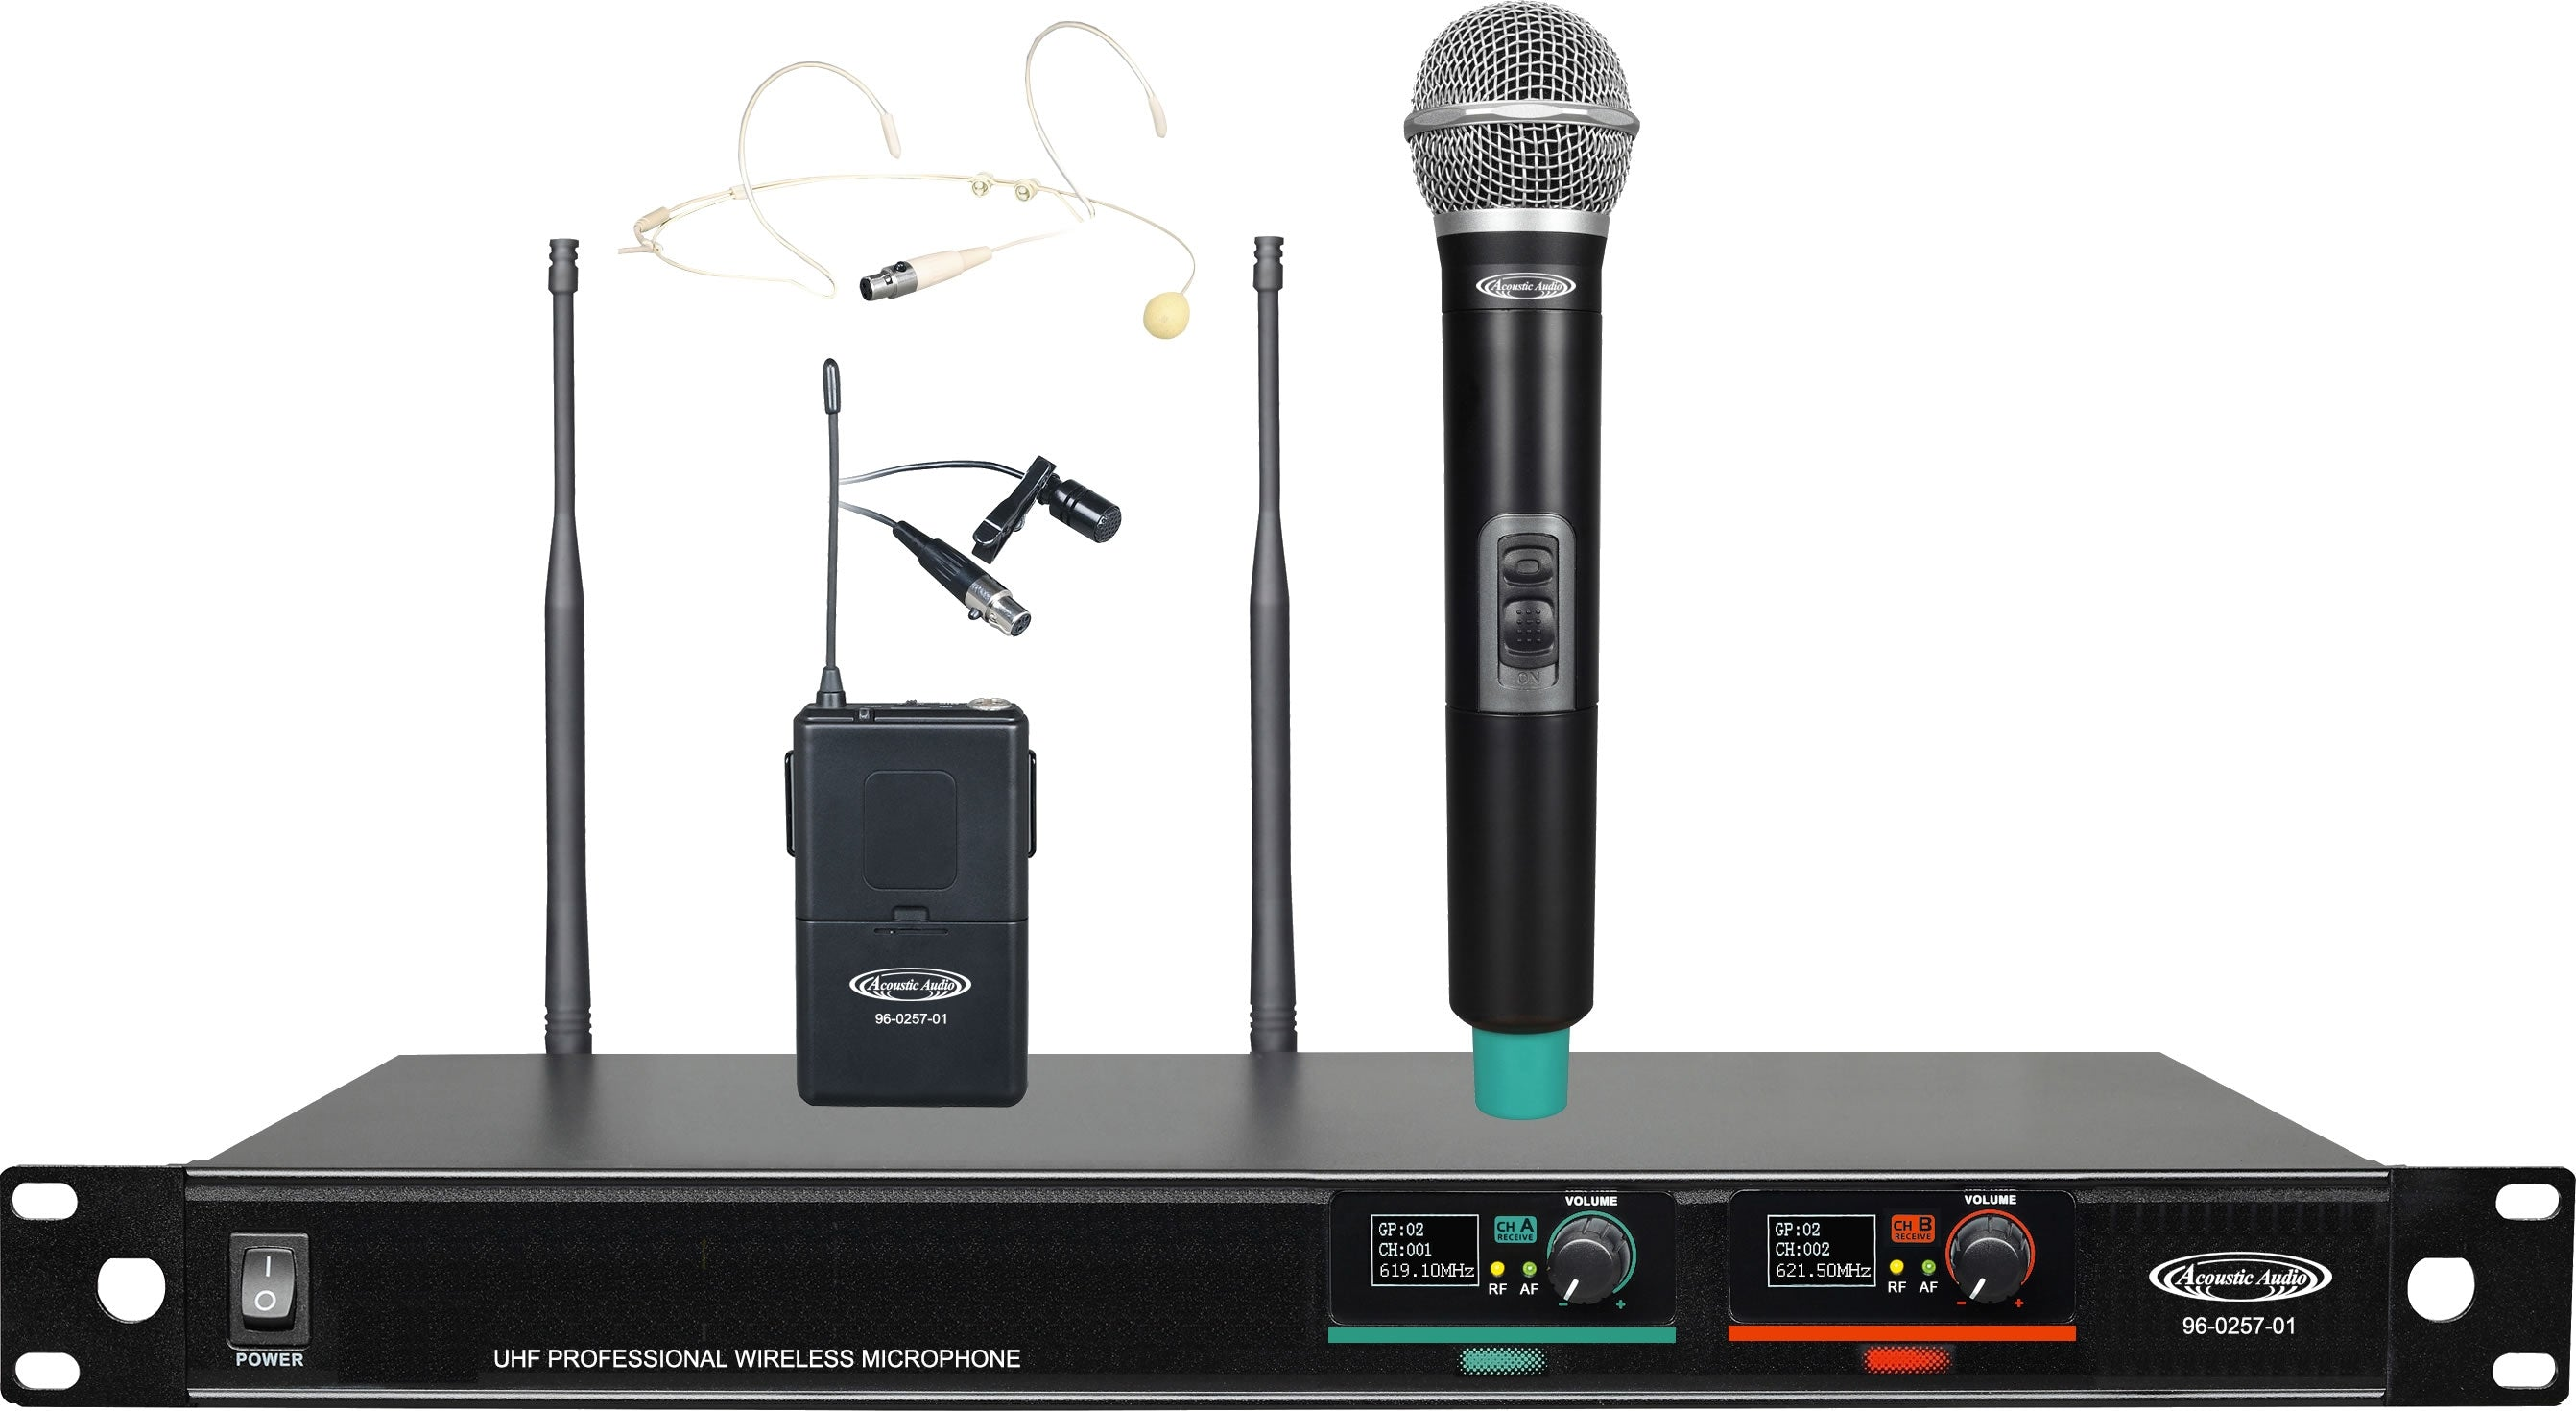 96-0257-01 UHF Professional Wireless Microphone Systems - 1*Wireless Microphone & 1*Headset